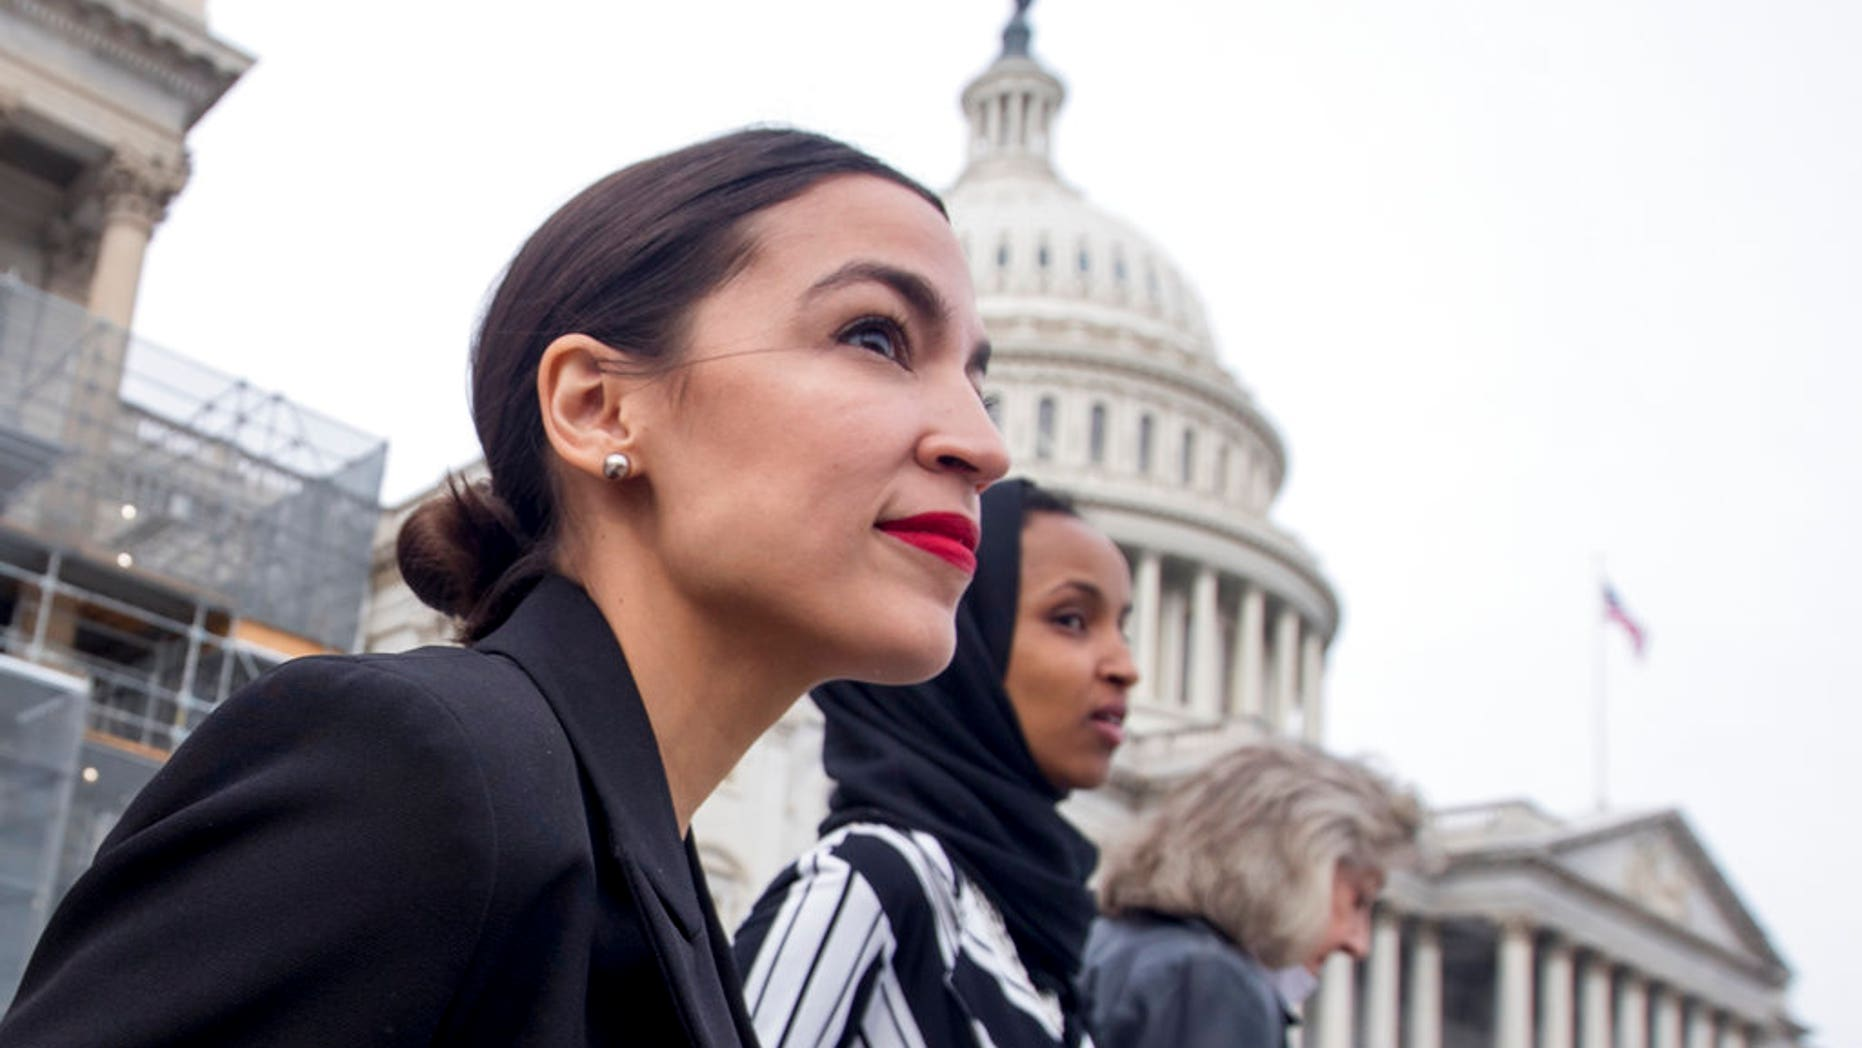 Ocasio-Cortez's campaign fined by New York